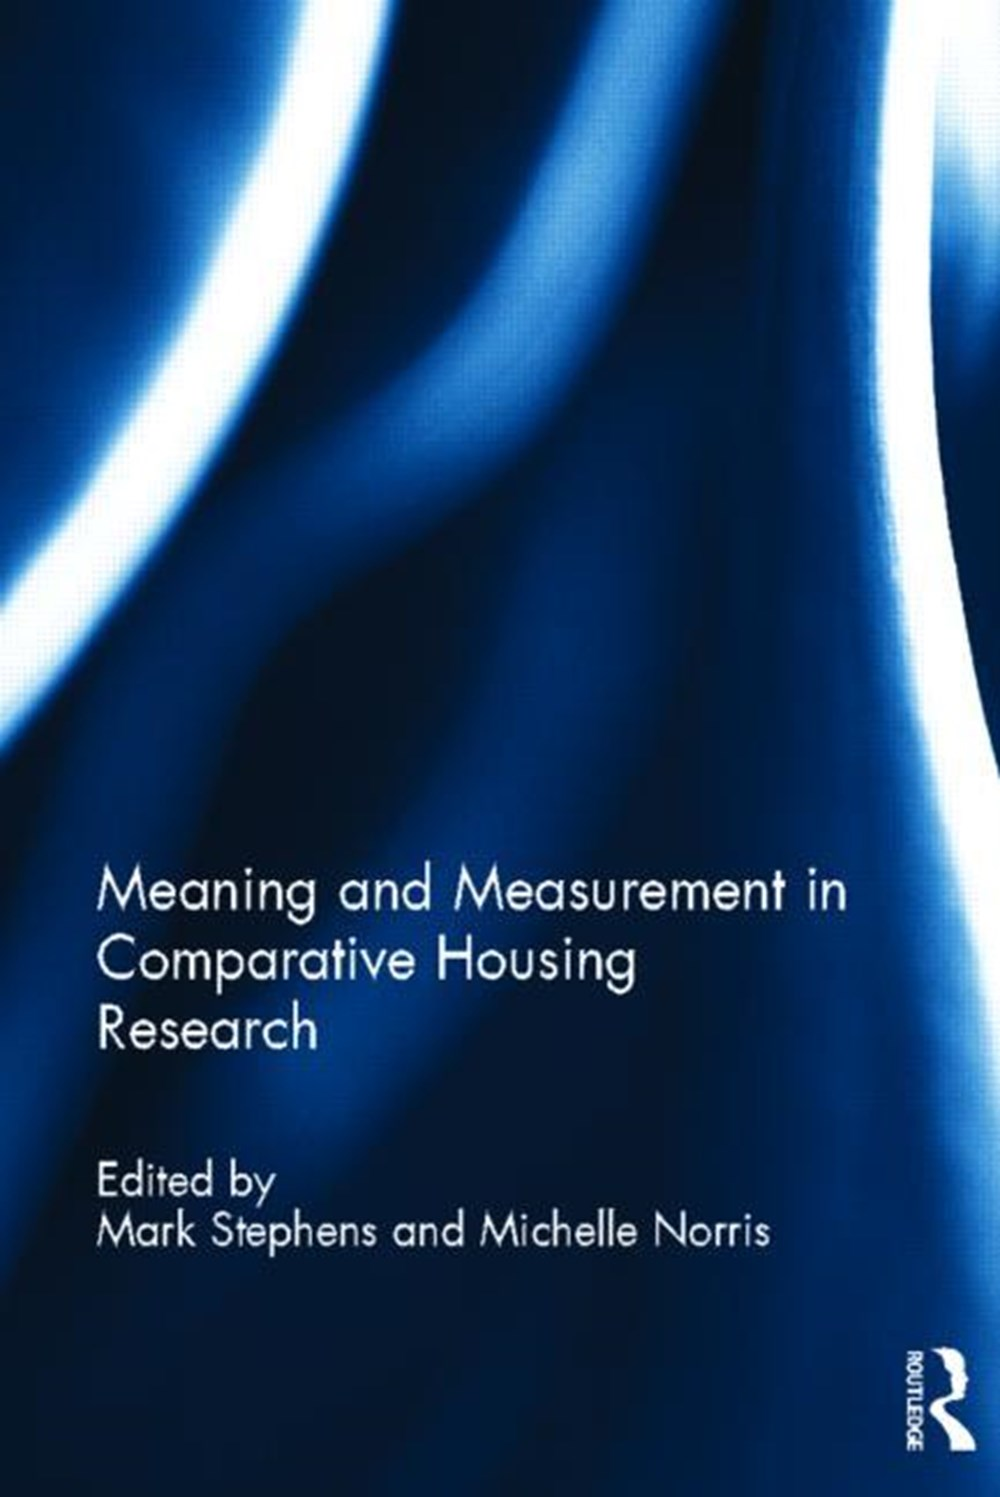 Meaning and Measurement in Comparative Housing Research